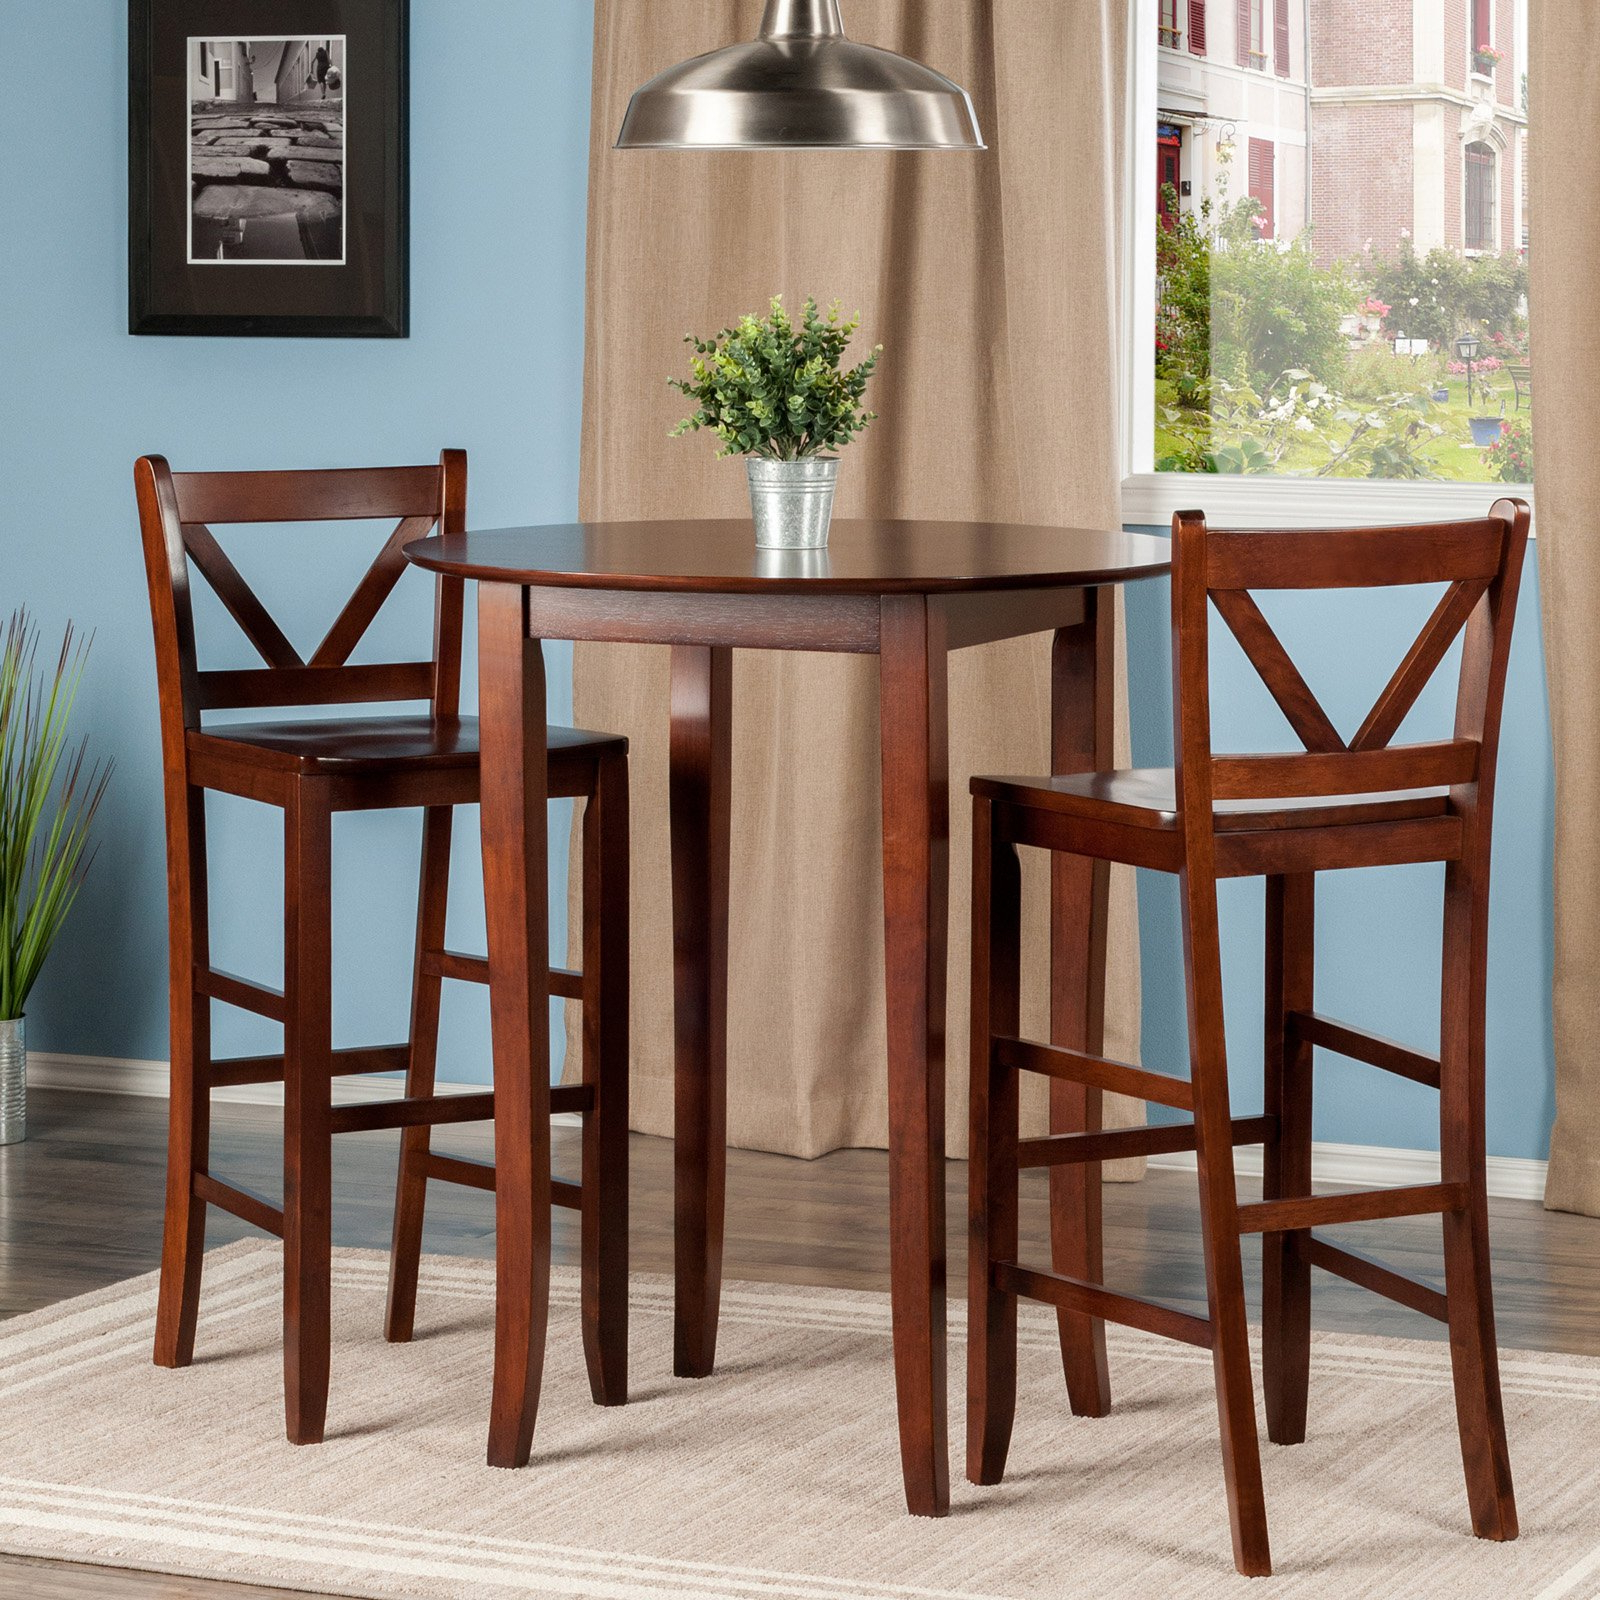 Winsome Trading Fiona 3 Piece Counter Height Round Dining Table Set Intended For Well Liked Winsome 3 Piece Counter Height Dining Sets (View 19 of 20)